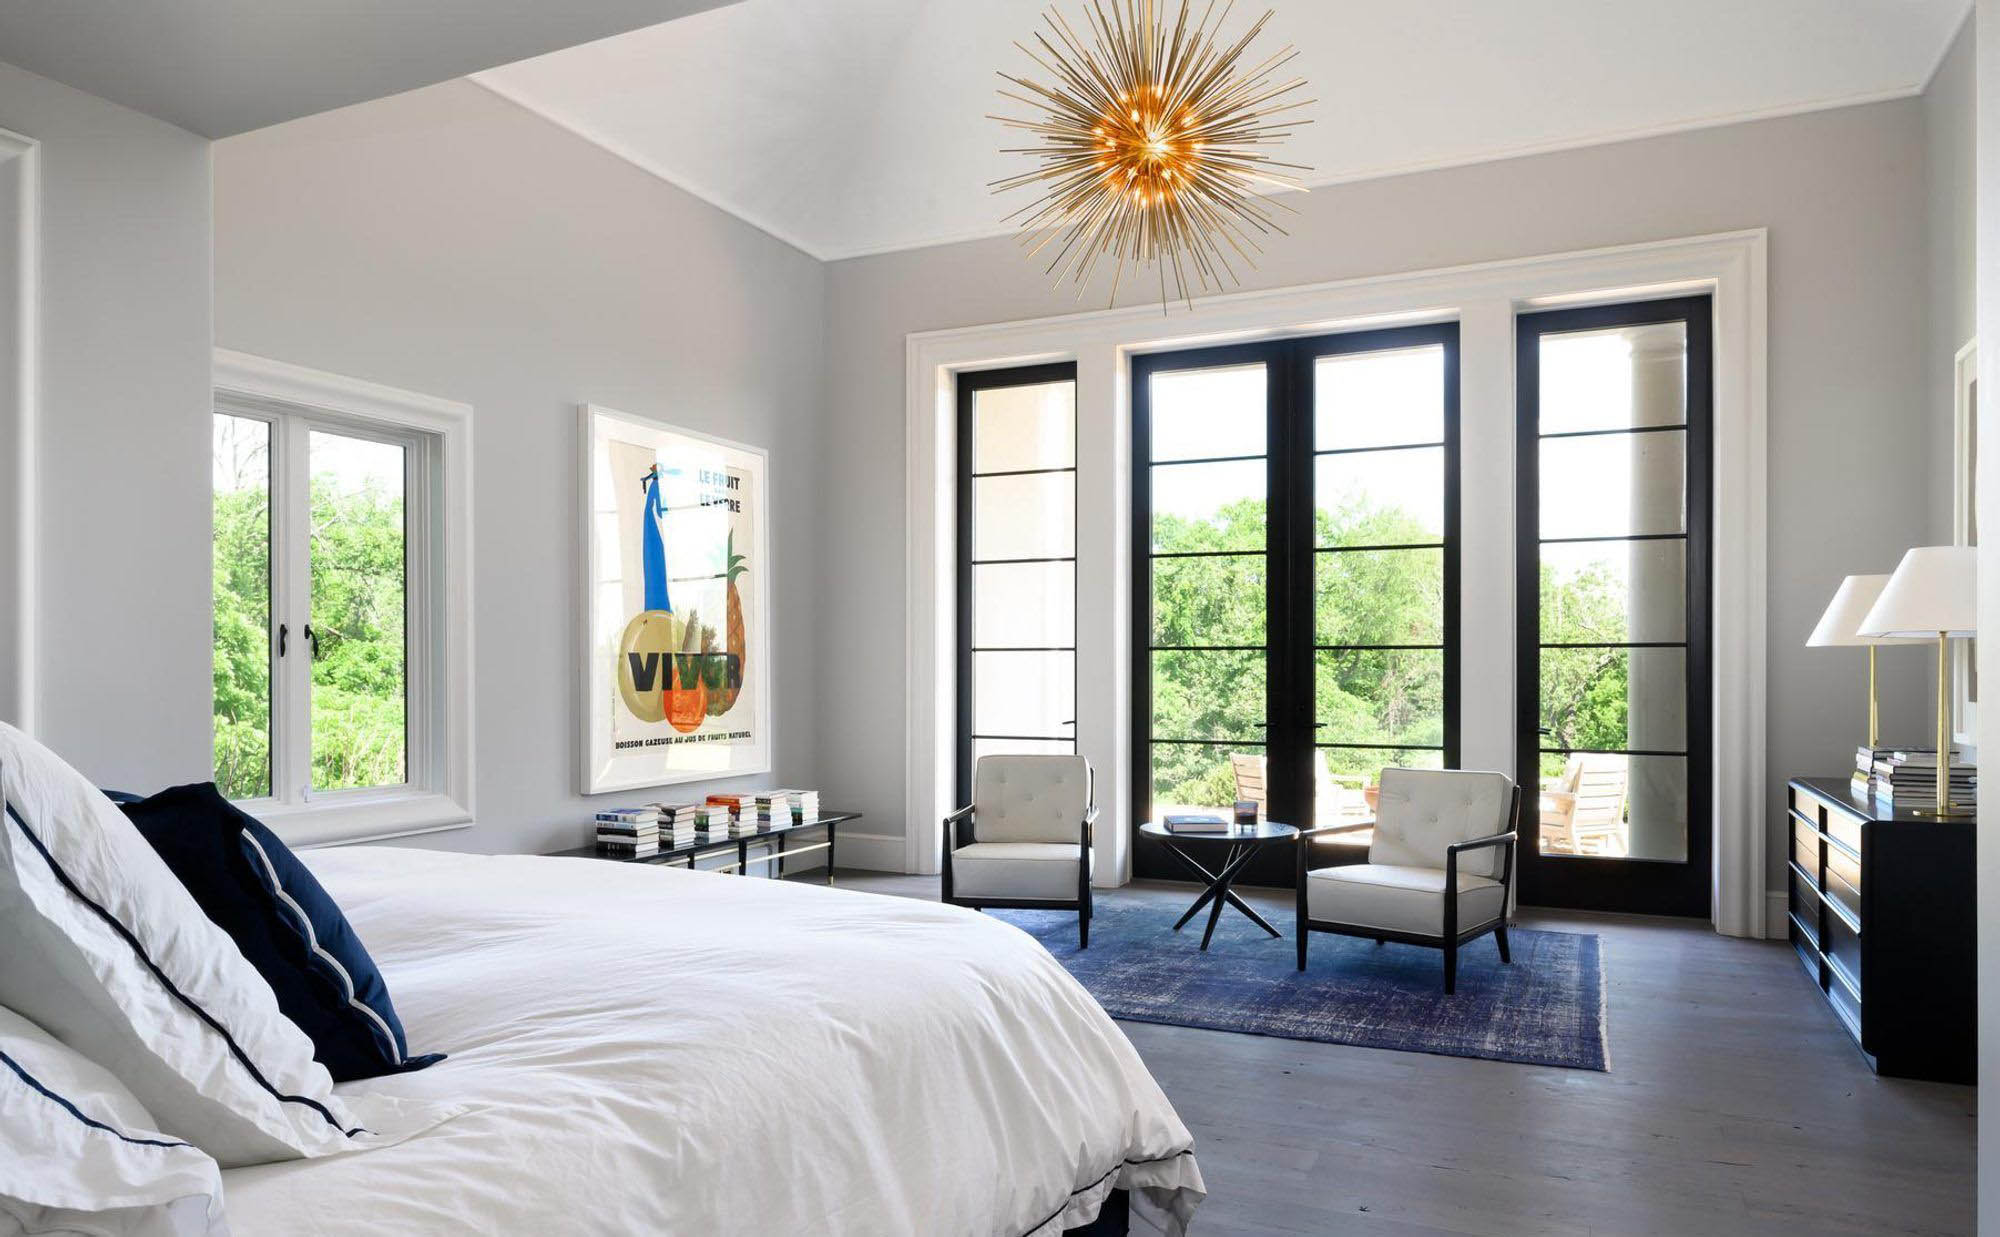 cool master bedroom design idea framed posters with a funky chandelier transitional design